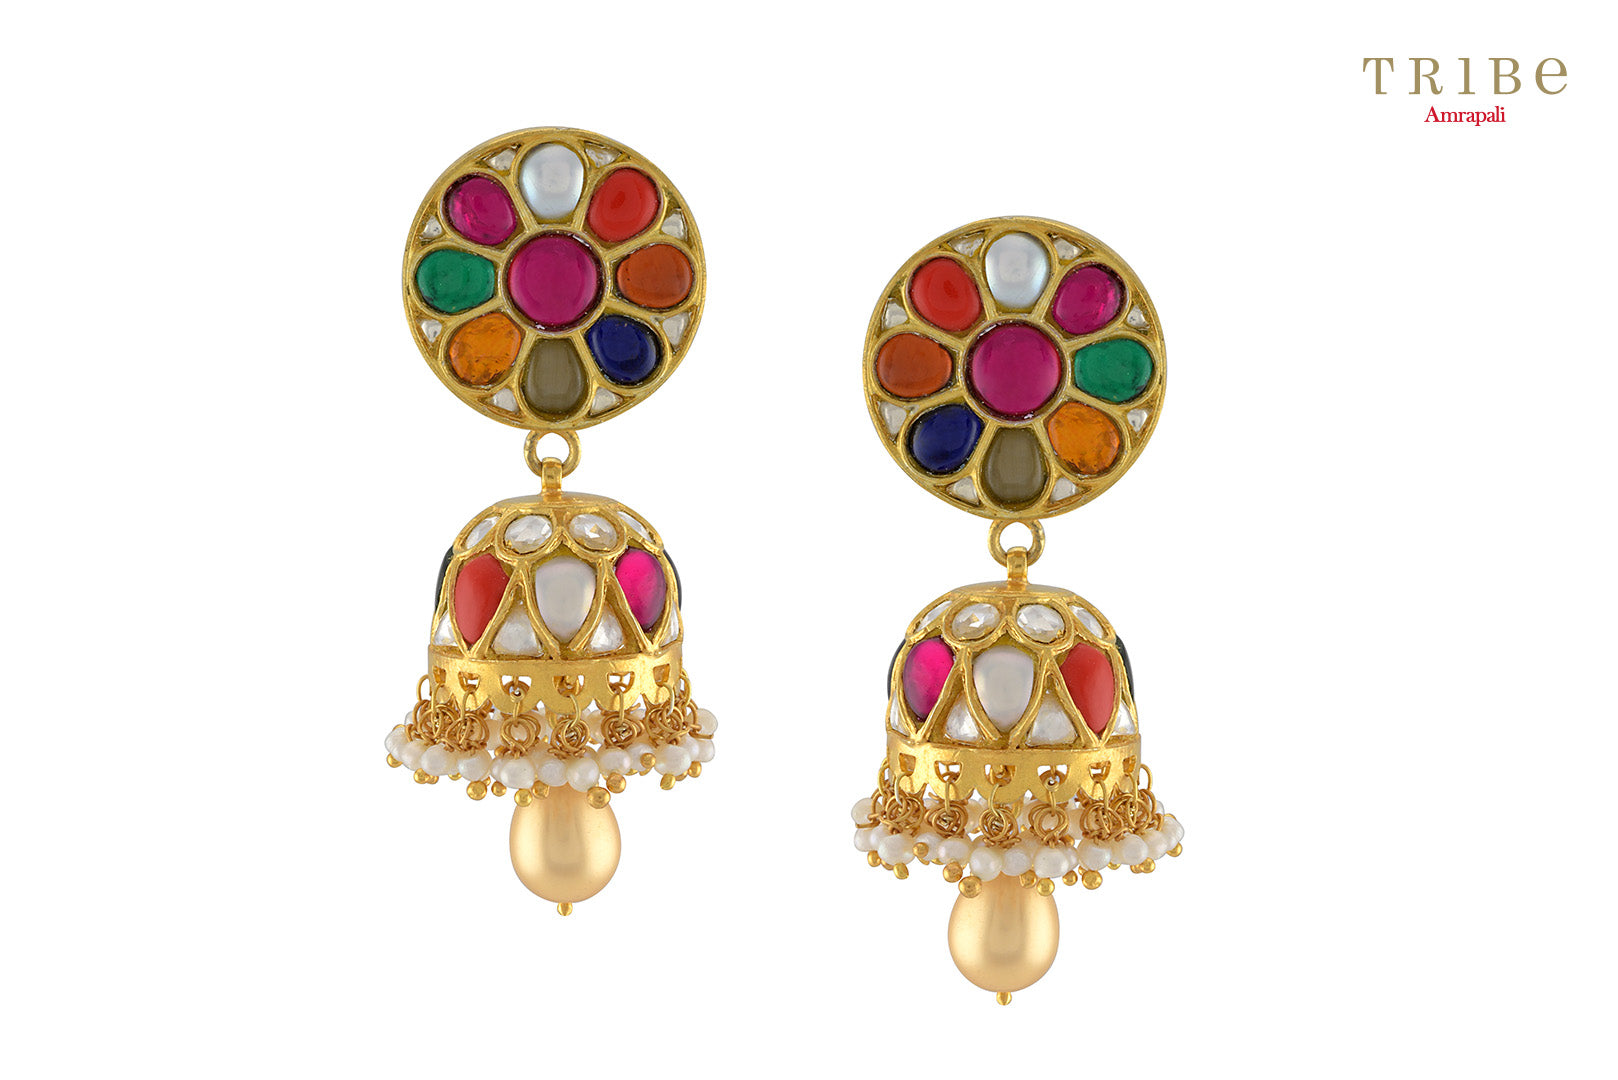 Traditional  Tribe Amrapali silver gold plated round multicolored jhumki earrings buy online in USA. The earrings are perfect to add a spark to your Indian wedding look. If you want to shop such ethnic Indian silver gold plated jewellery in USA, then look no further than Pure Elegance exclusive fashion store.-full view